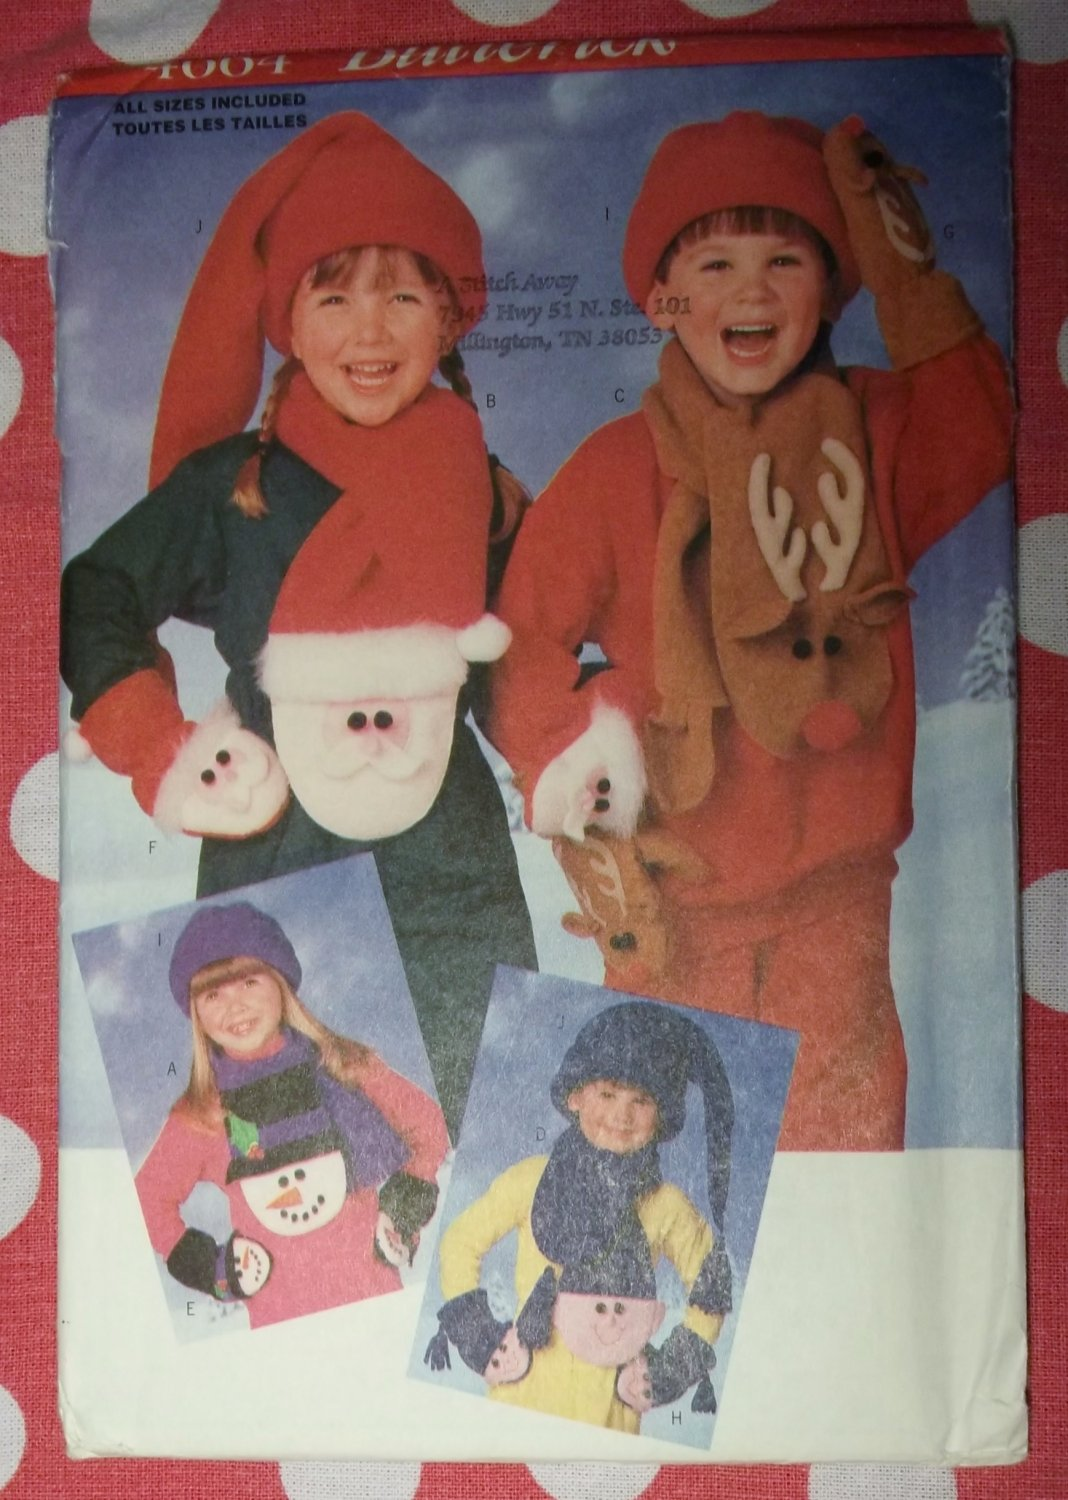 OOP Butterick 4664 Pattern Kids Christmas Fleece Scarves, Mittens, & Hats, Sz Sm, Md, Lg, UNCUT